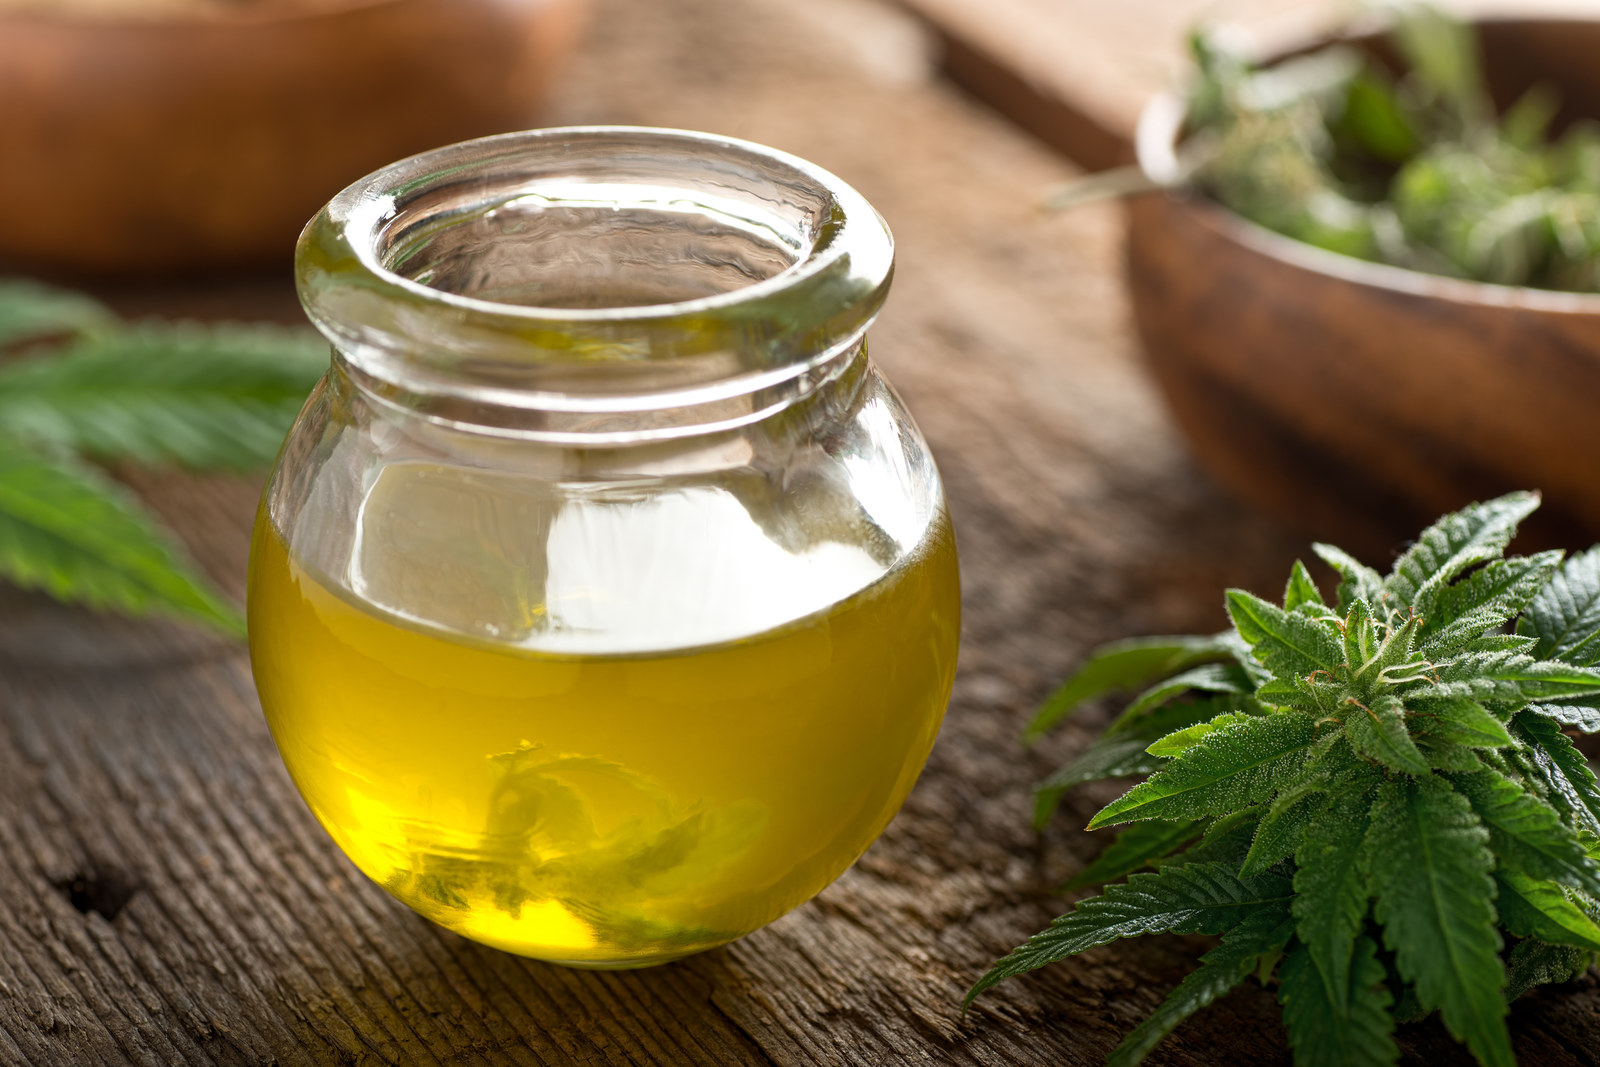 What Is CBD Oil And Why Are People So Into It? A Guide